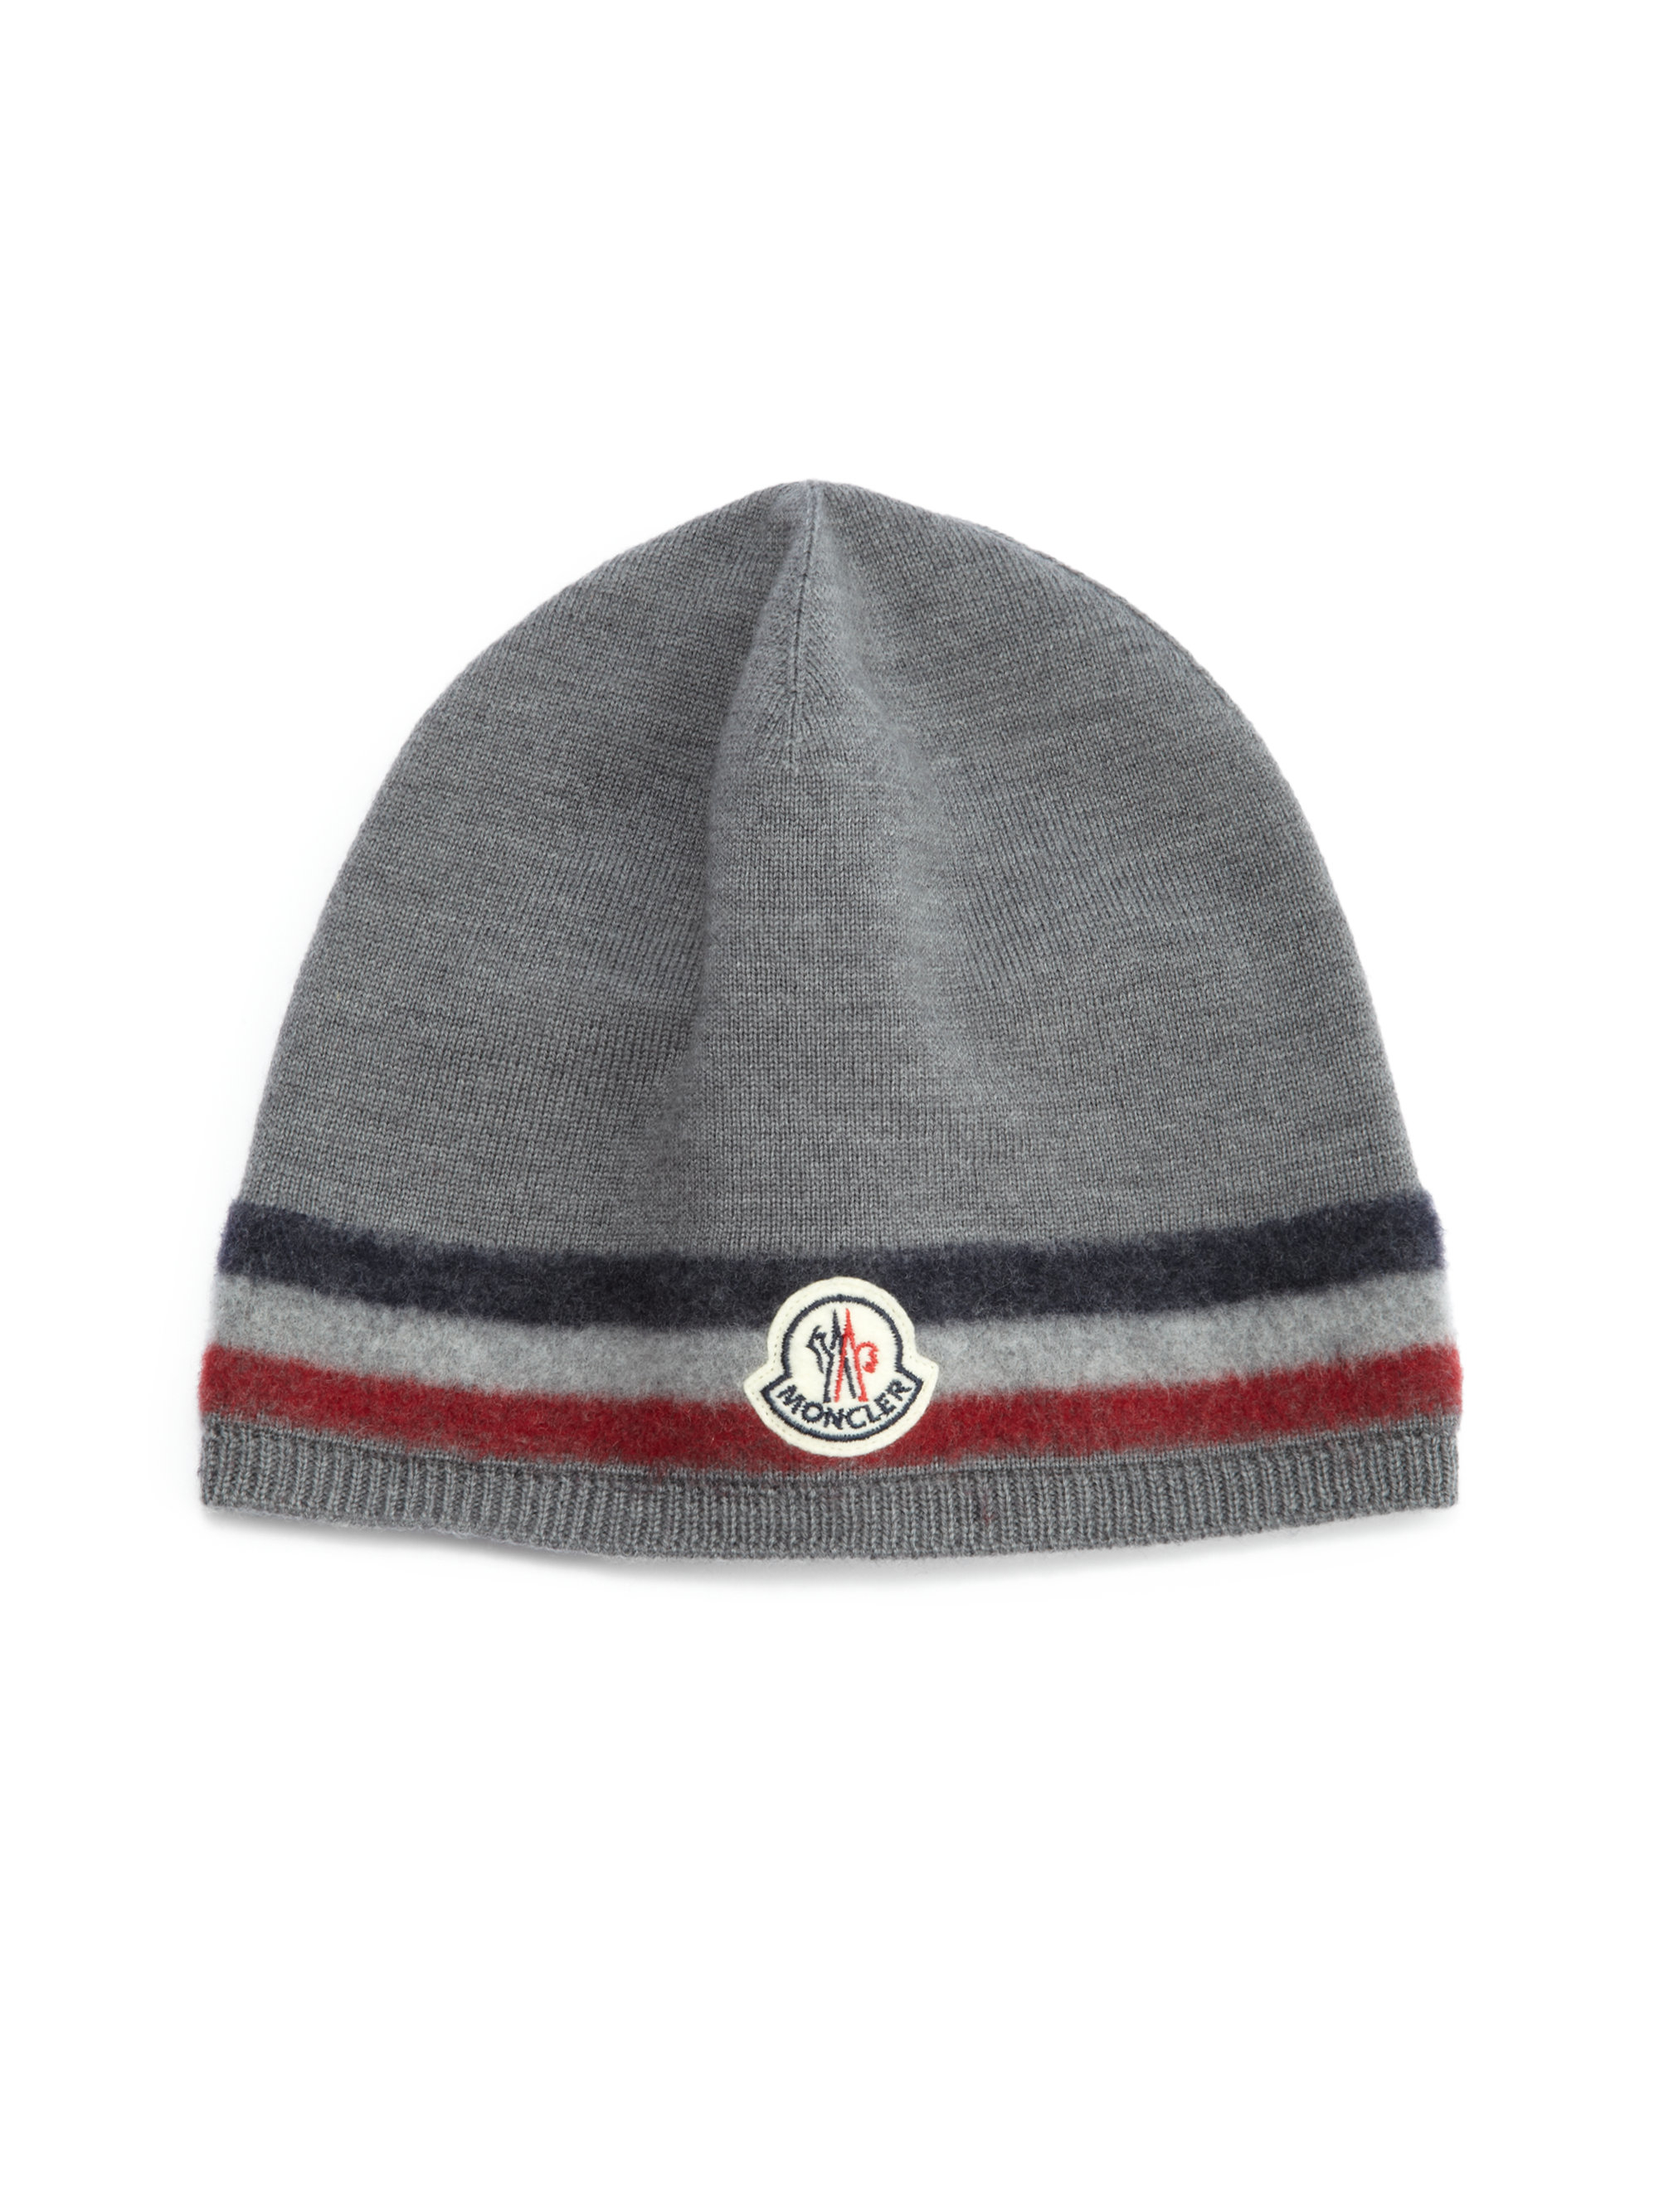 219a3218d35 Lyst - Moncler Striped Wool Hat in Gray for Men